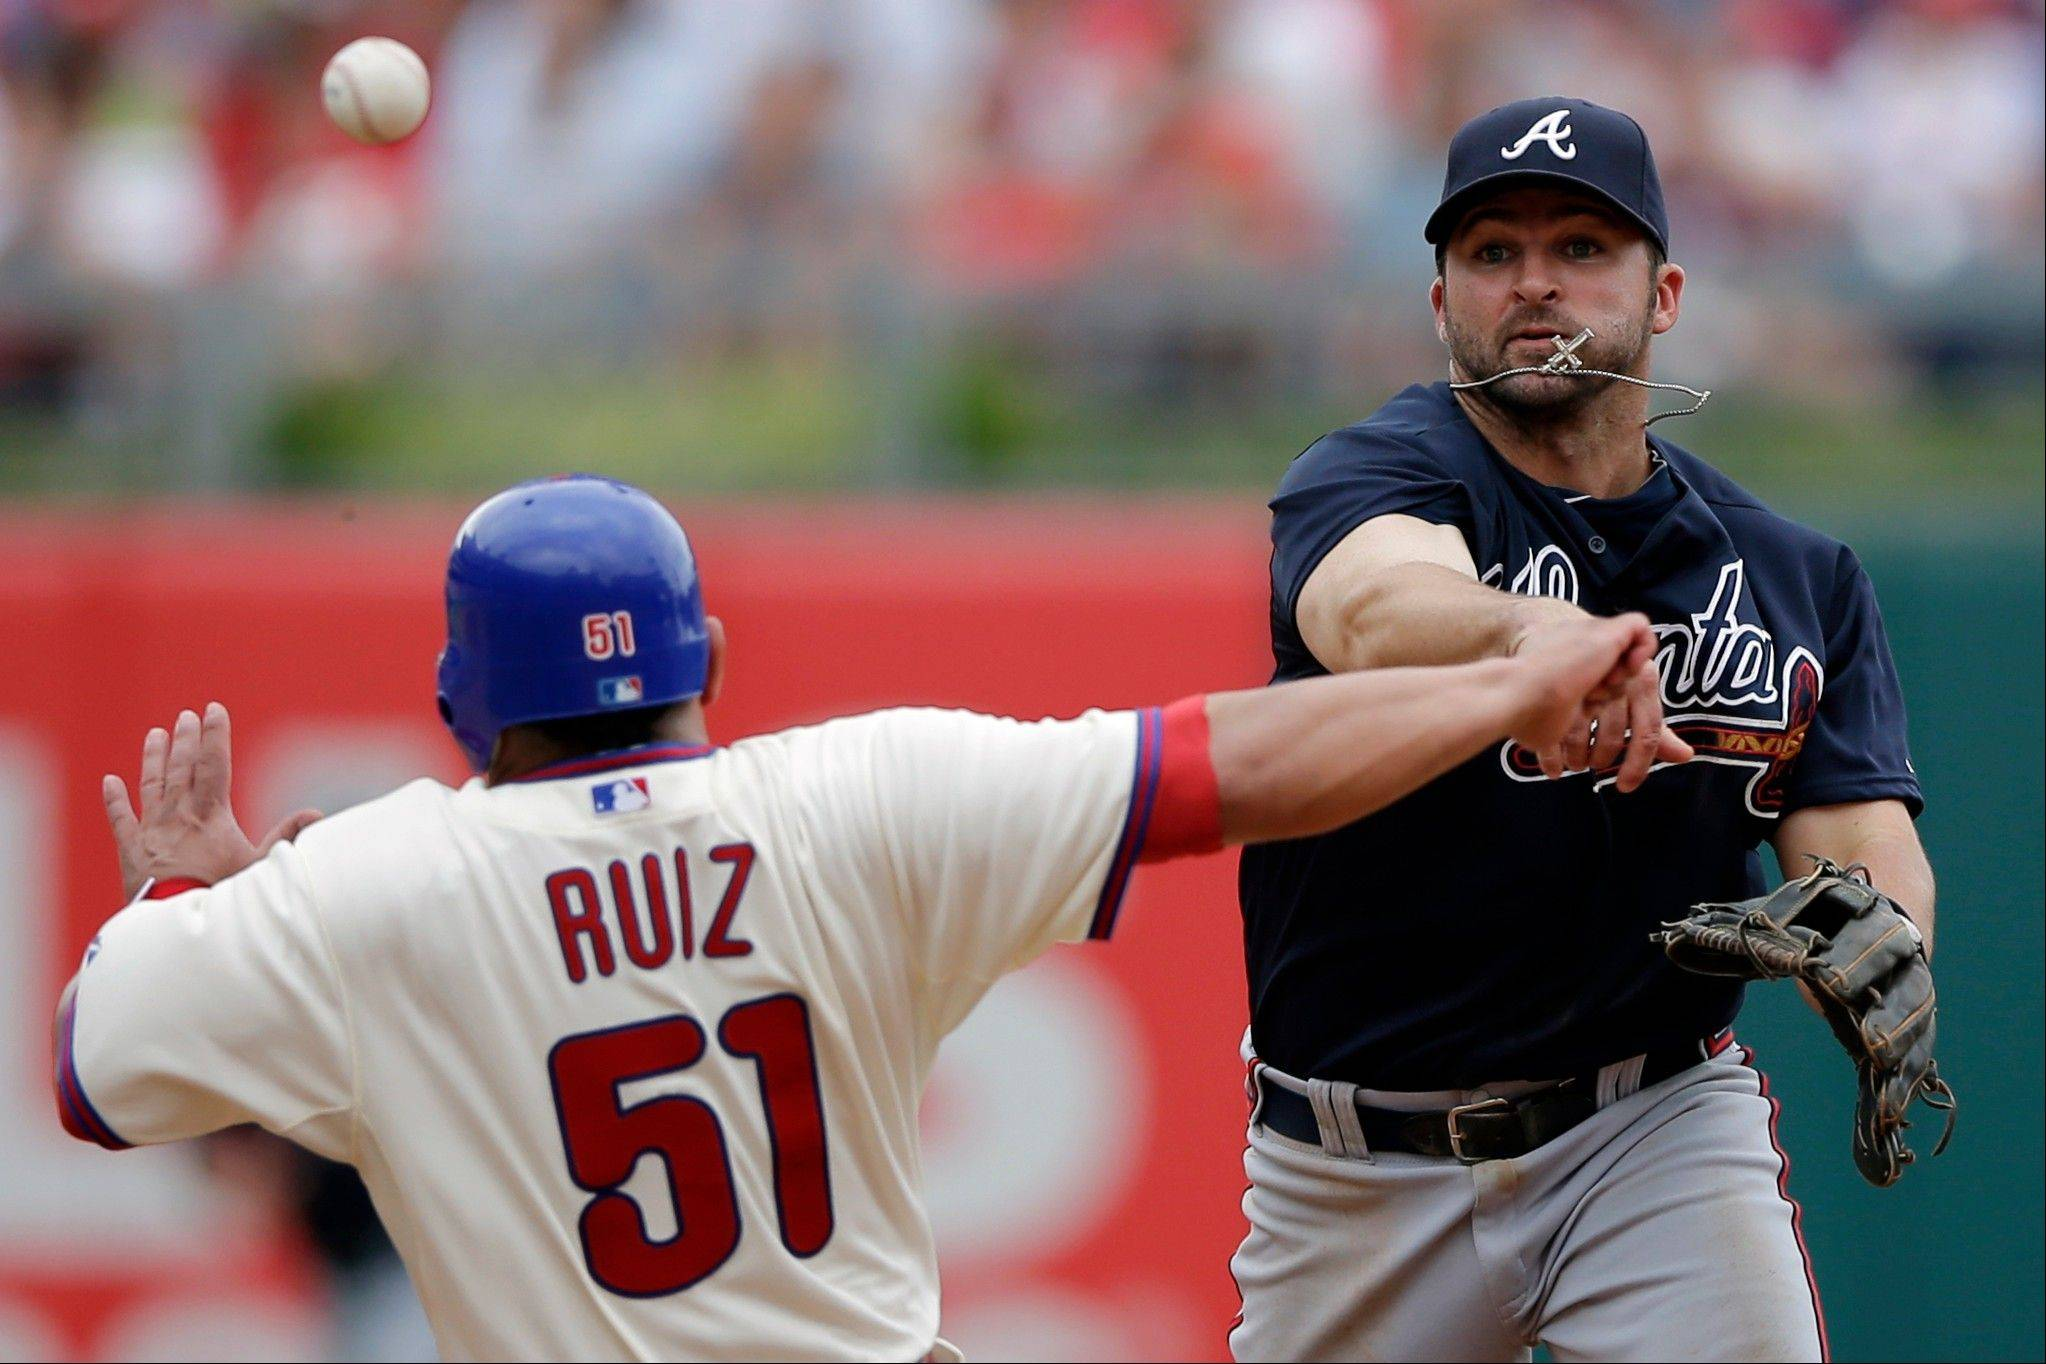 Atlanta second baseman Dan Uggla throws to first after forcing out the Phillies' Carlos Ruiz at second on a double play in the sixth inning Sunday in Philadelphia.